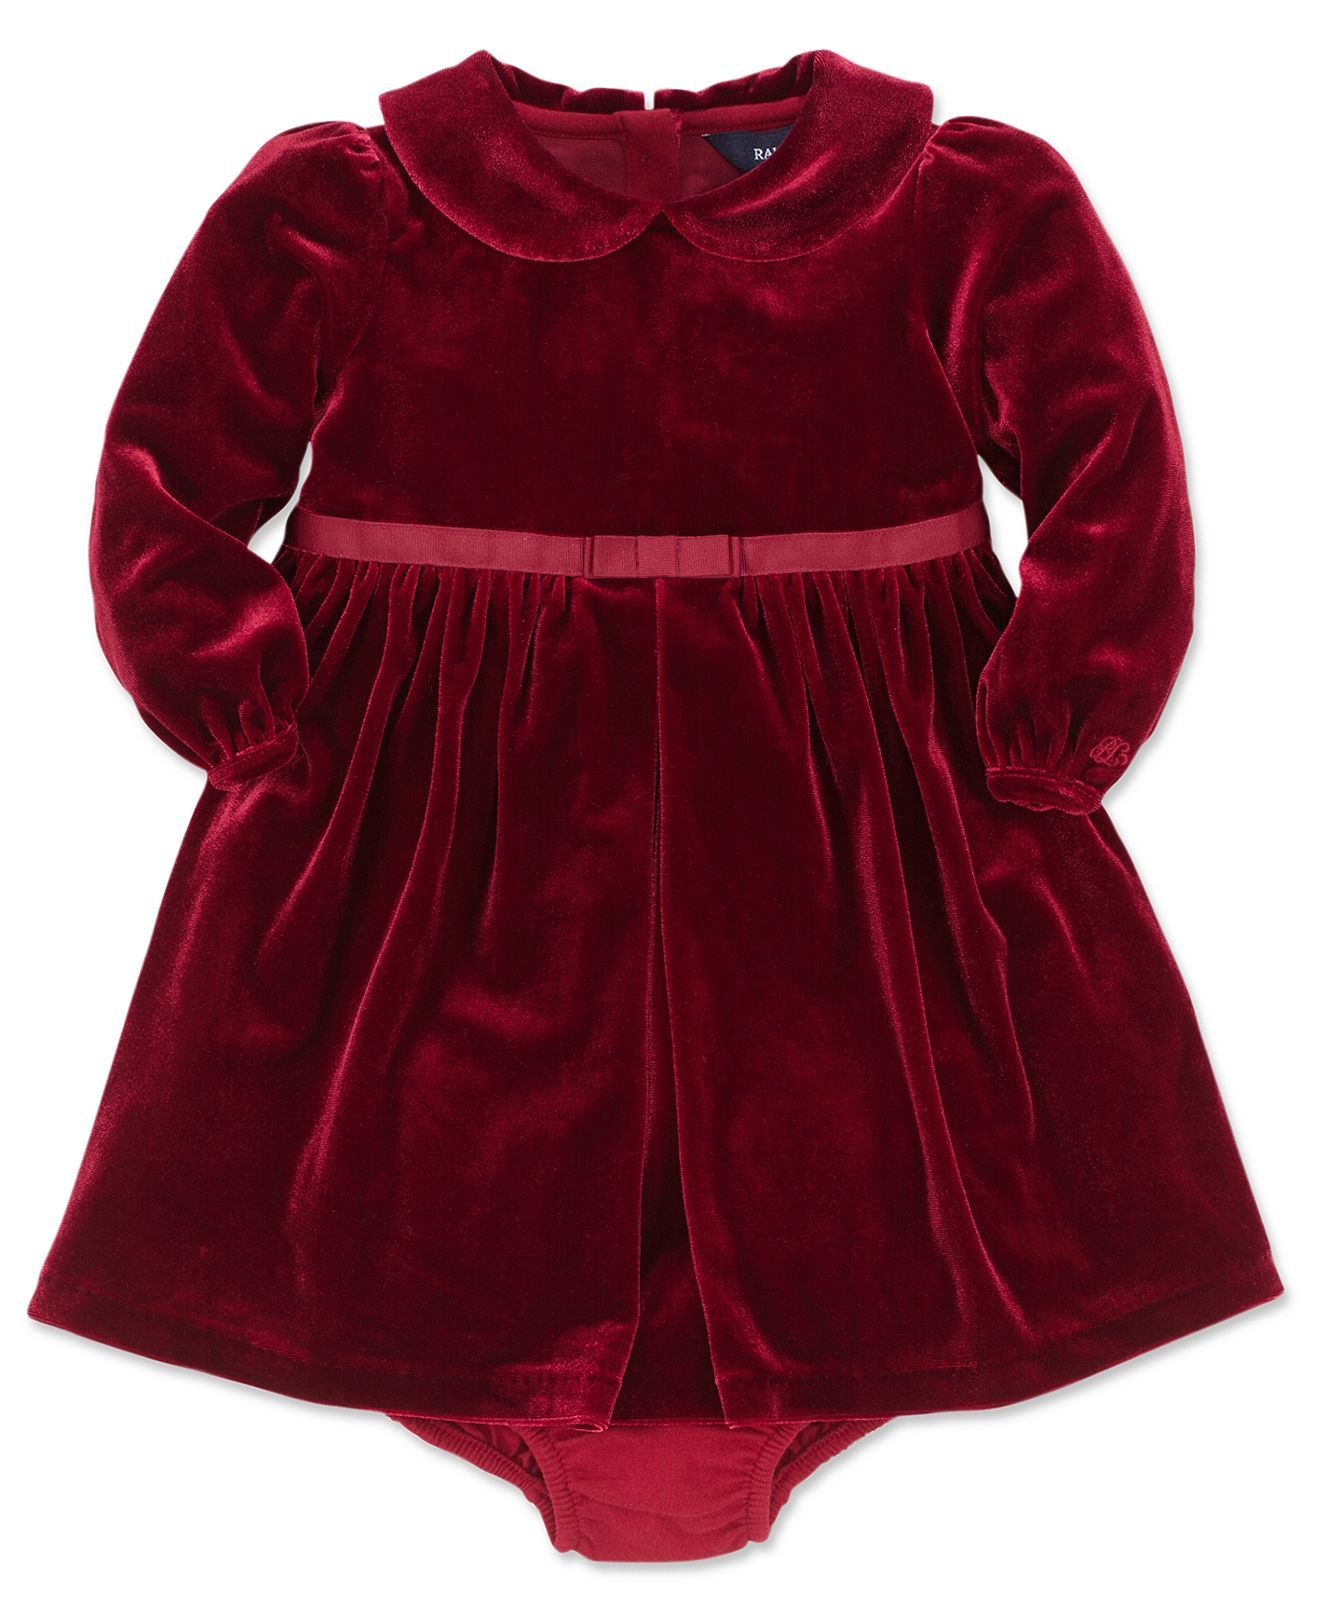 Free shipping on dresses, rompers & jumpsuits for girls (little girls, big girls & toddler) at shopnow-vjpmehag.cf Shop top brands for girls' dresses, rompers & jumpsuits. Free shipping & returns.